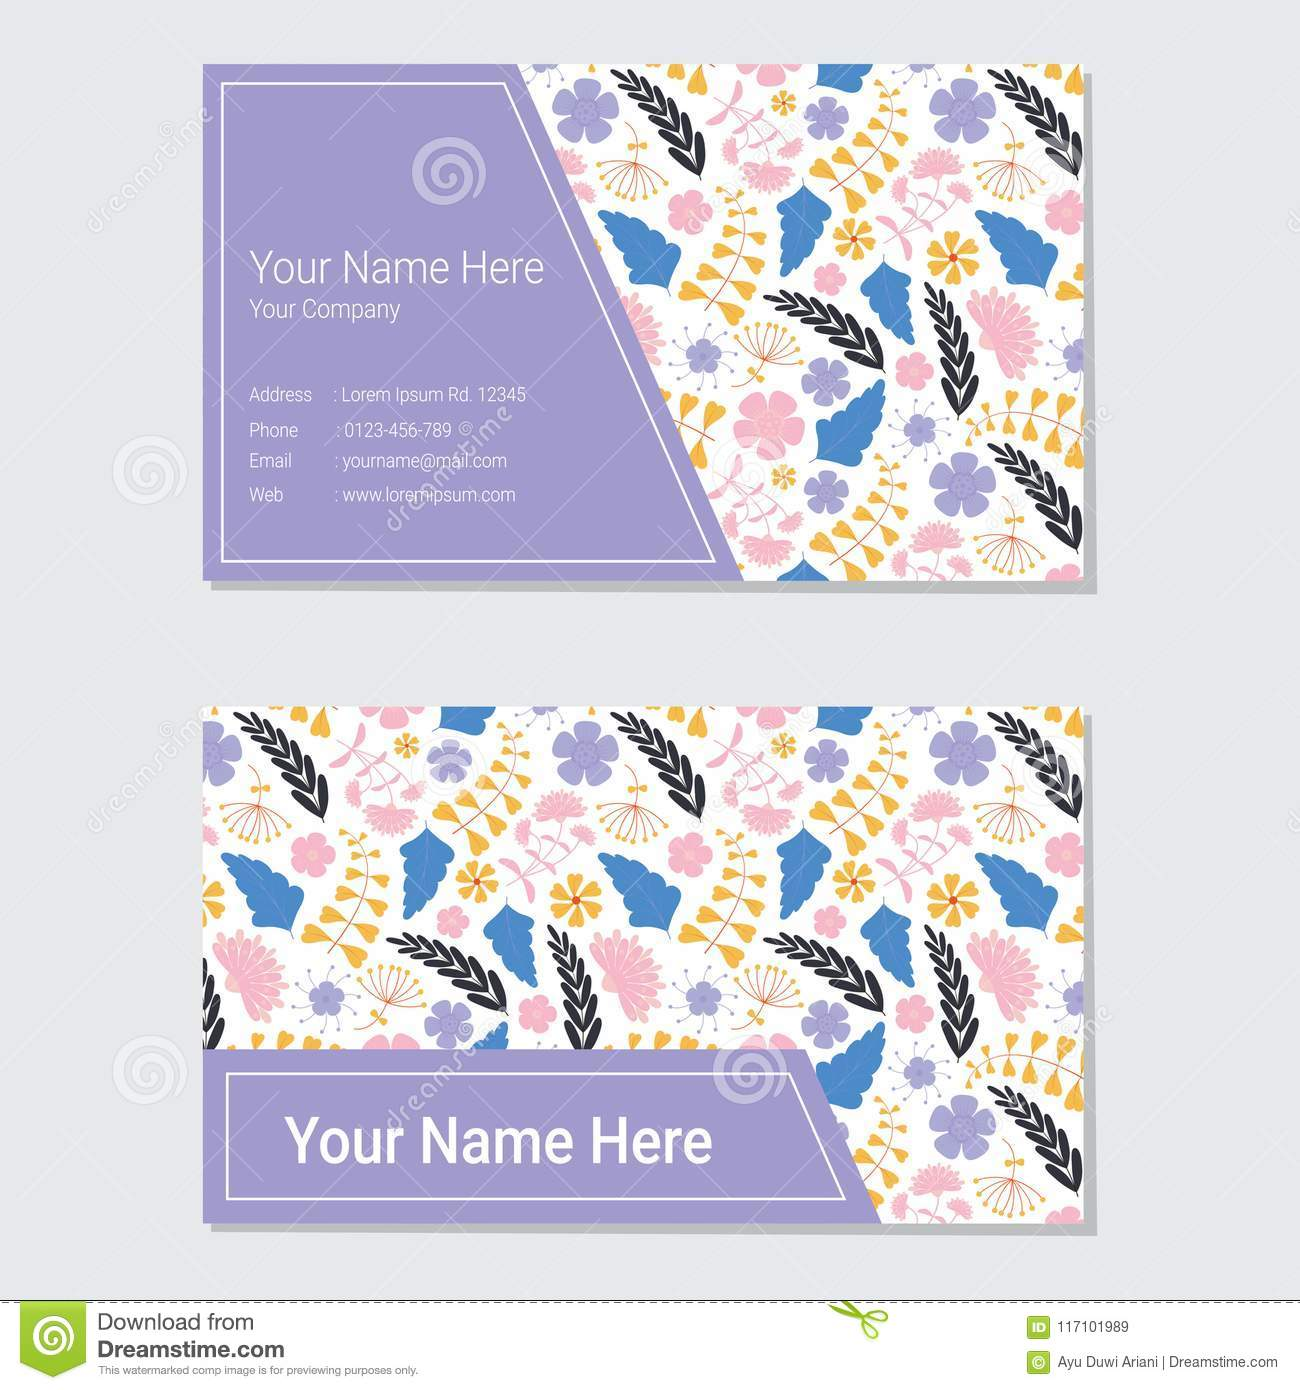 Floral business card template with pink and purple flower background download floral business card template with pink and purple flower background stock illustration illustration of cheaphphosting Gallery